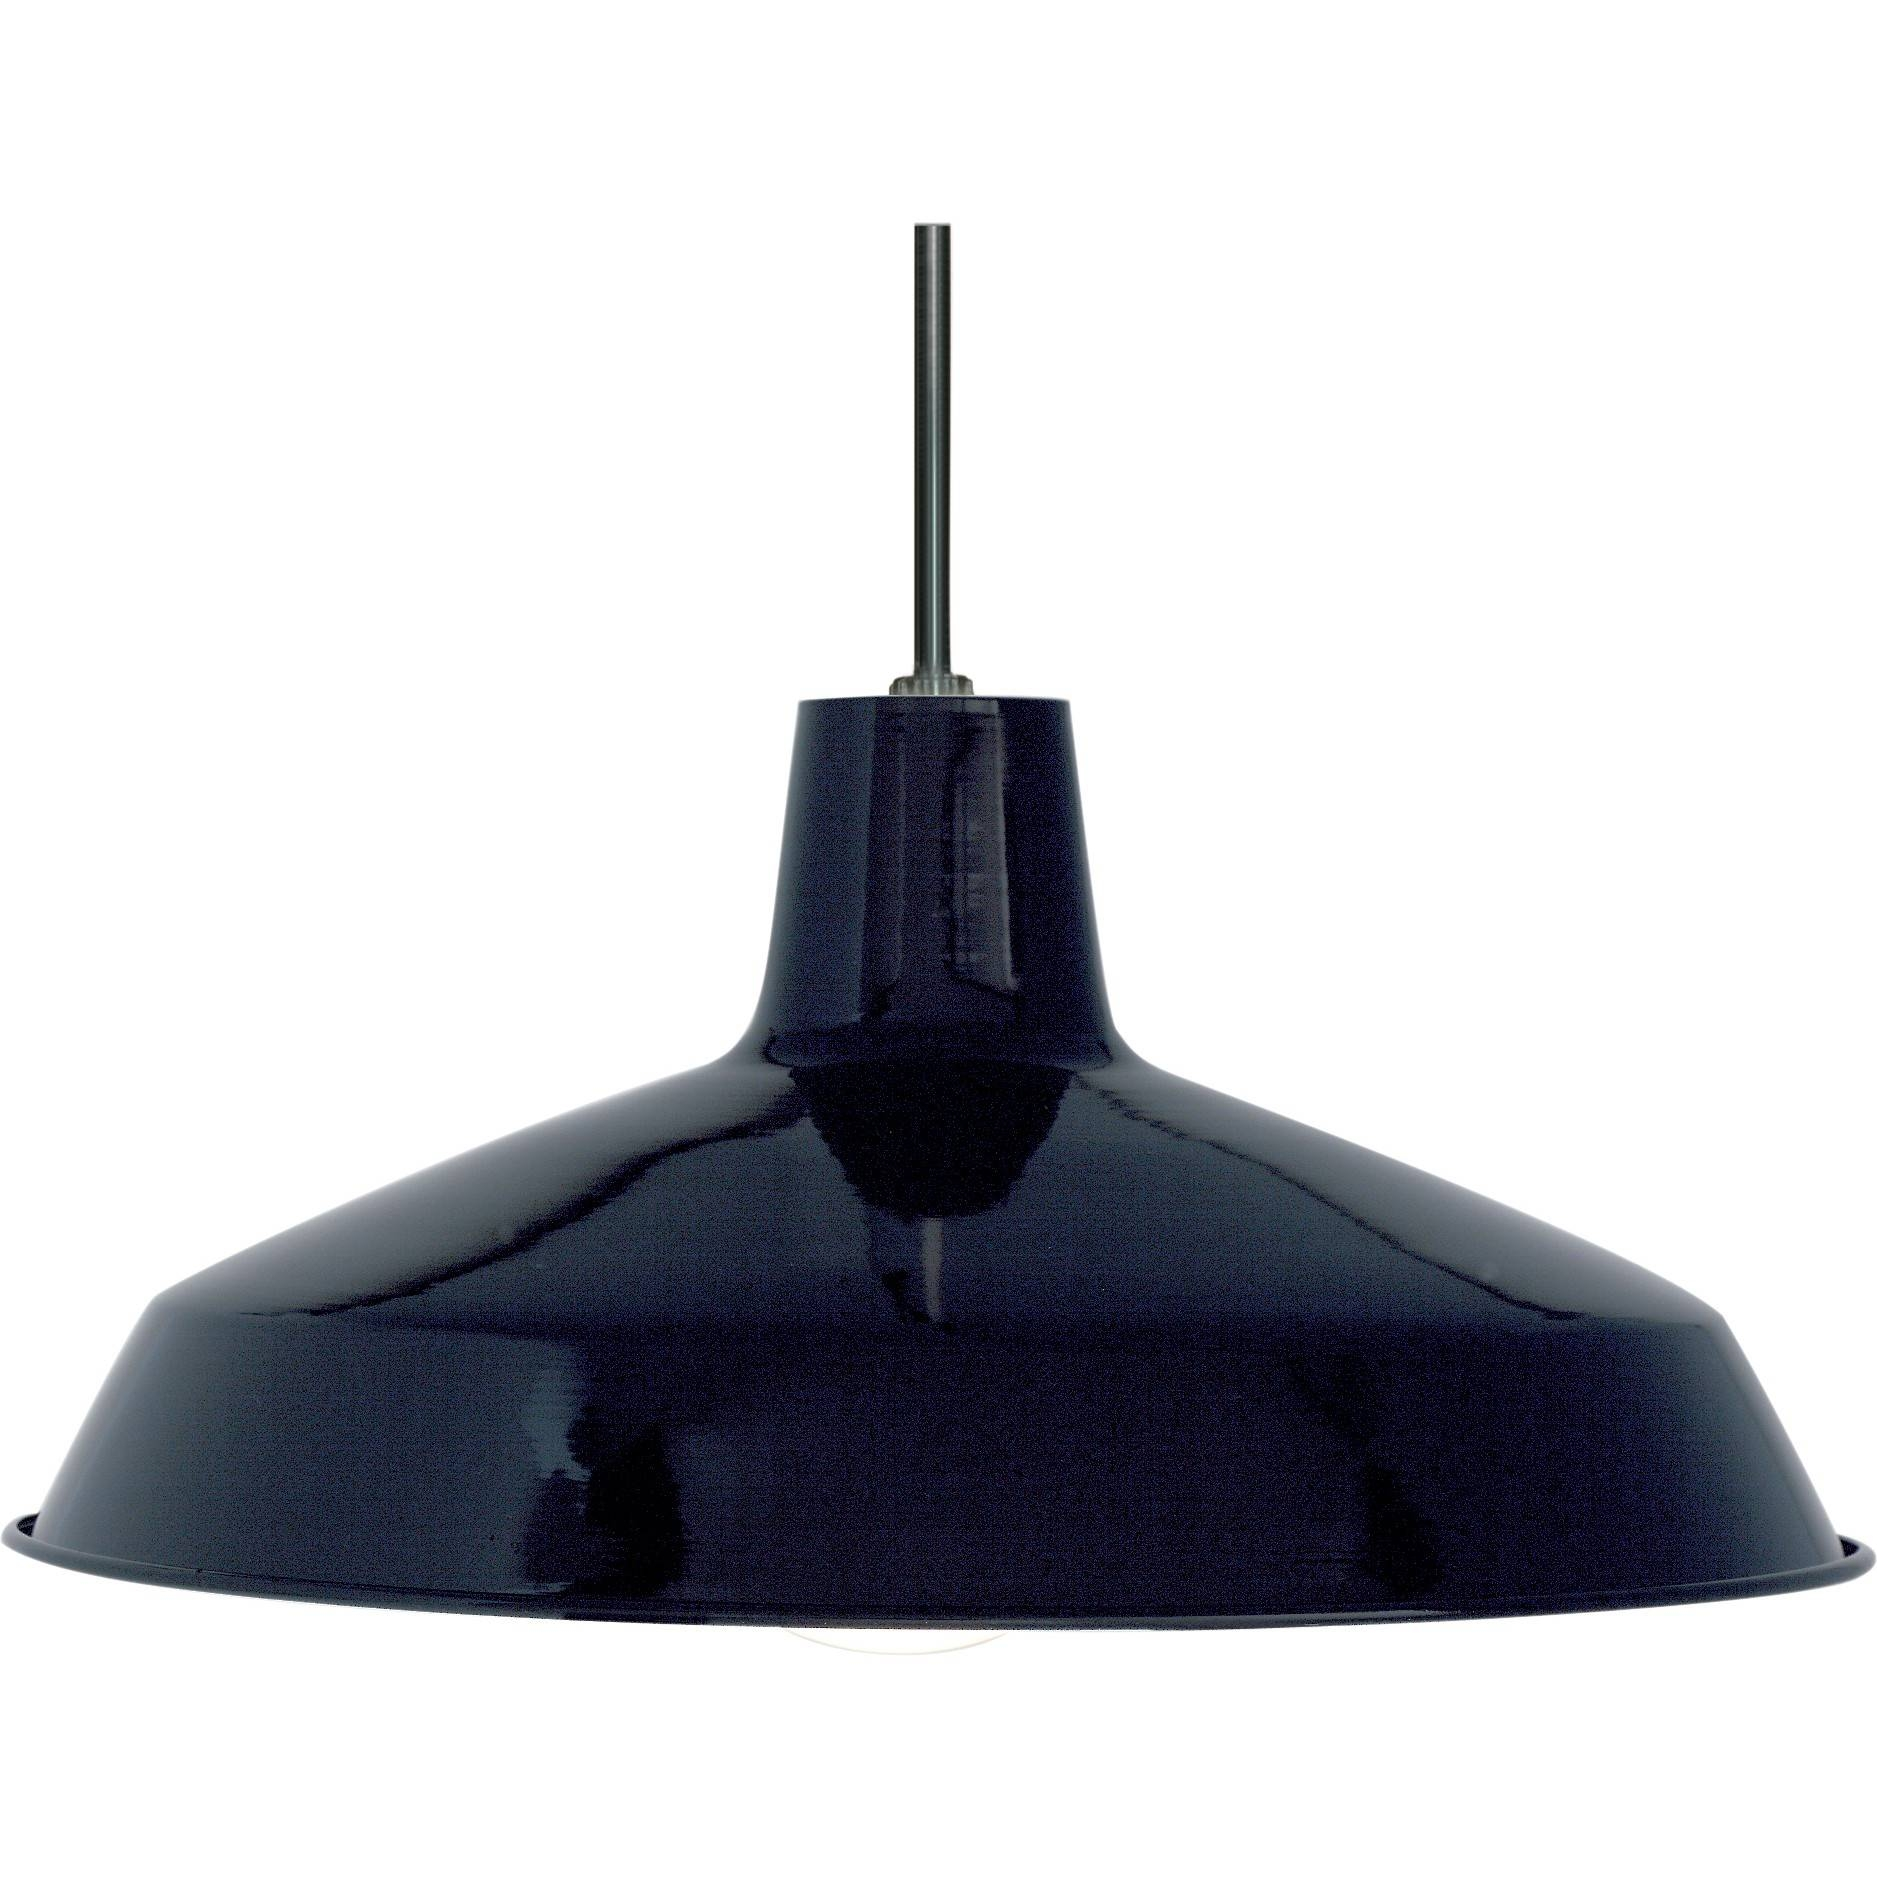 "Nuvo 76-284 | 1-Light 16"" Black Pendant Light Fixture With inside Warehouse Pendant Light Fixtures (Image 6 of 15)"